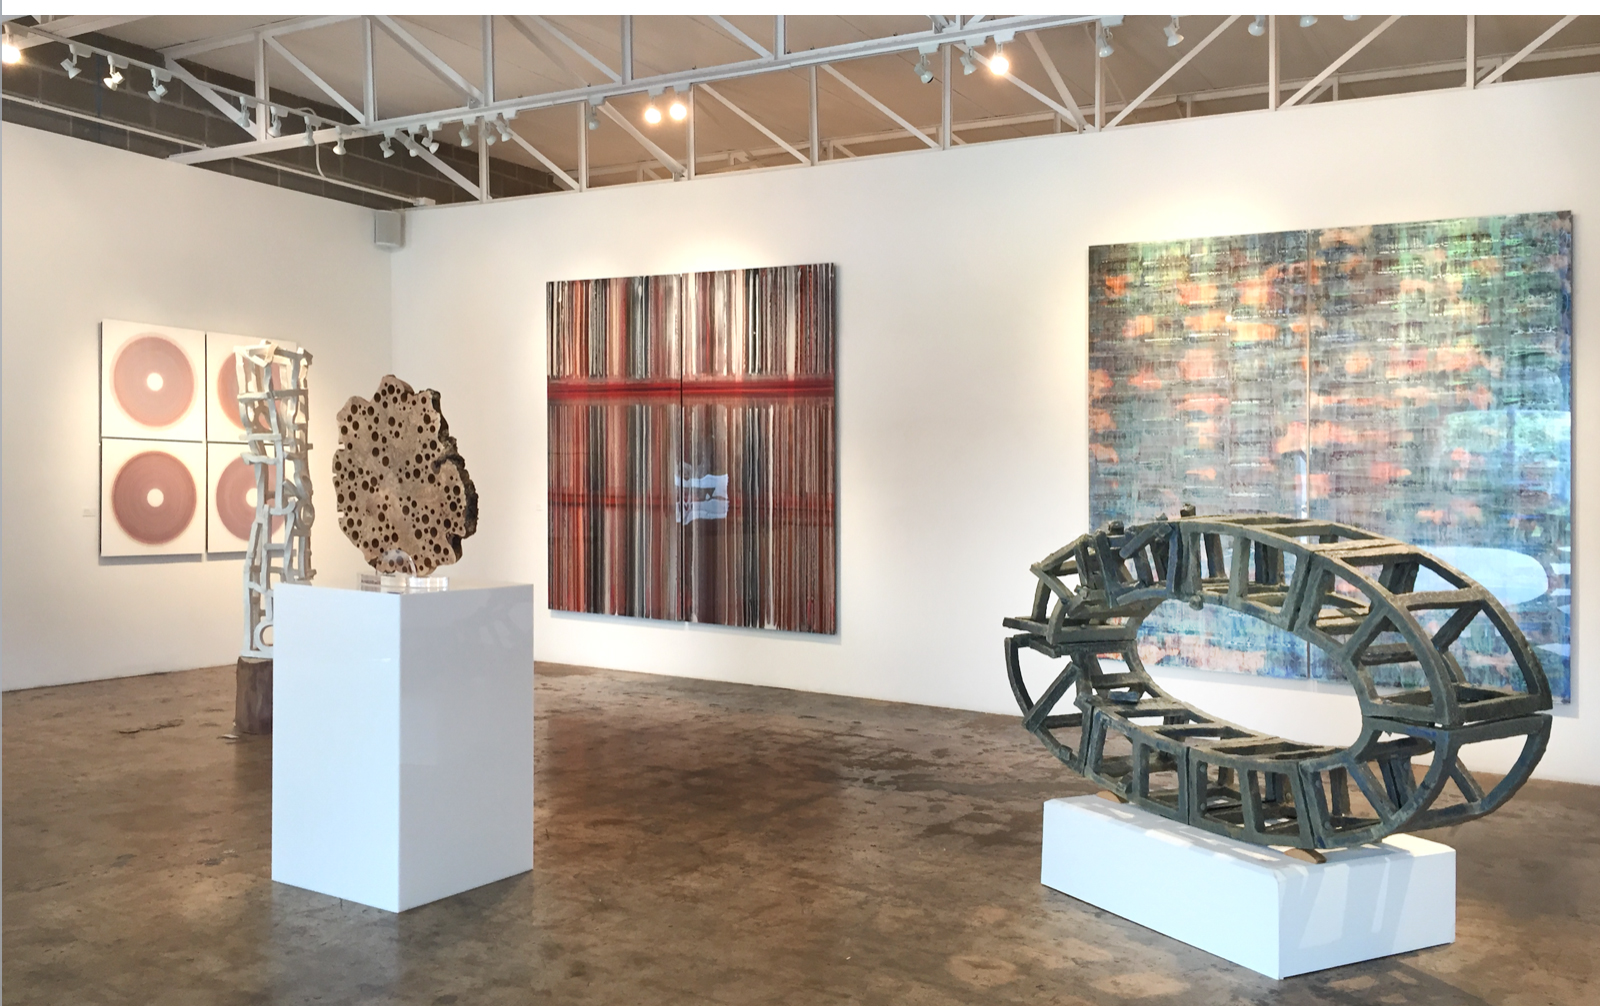 9/9/17 - DADA Fall Gallery Walk | Dallas Gallery